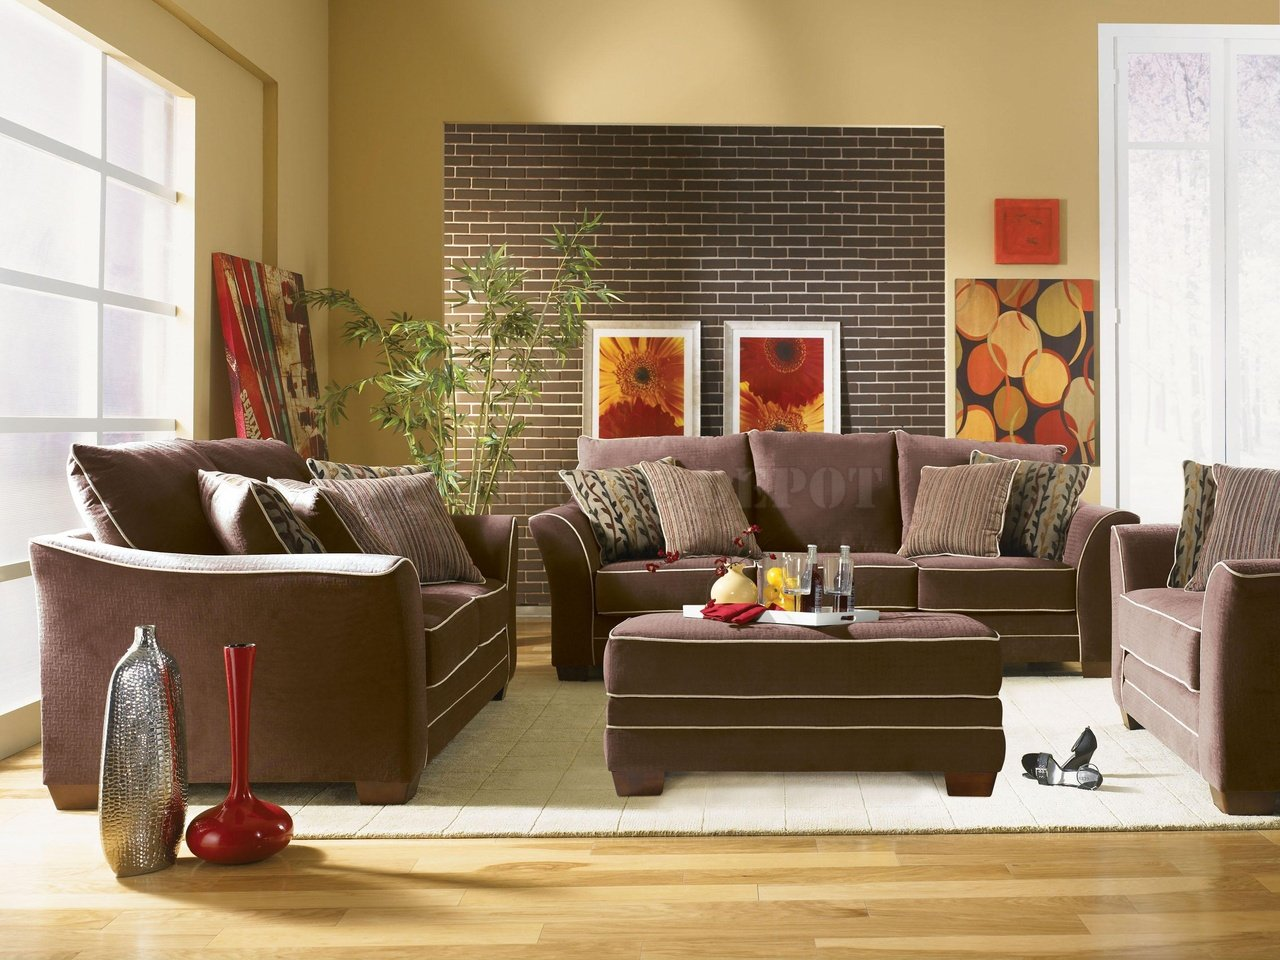 Interior design ideas interior designs home design ideas for Living room furniture design ideas